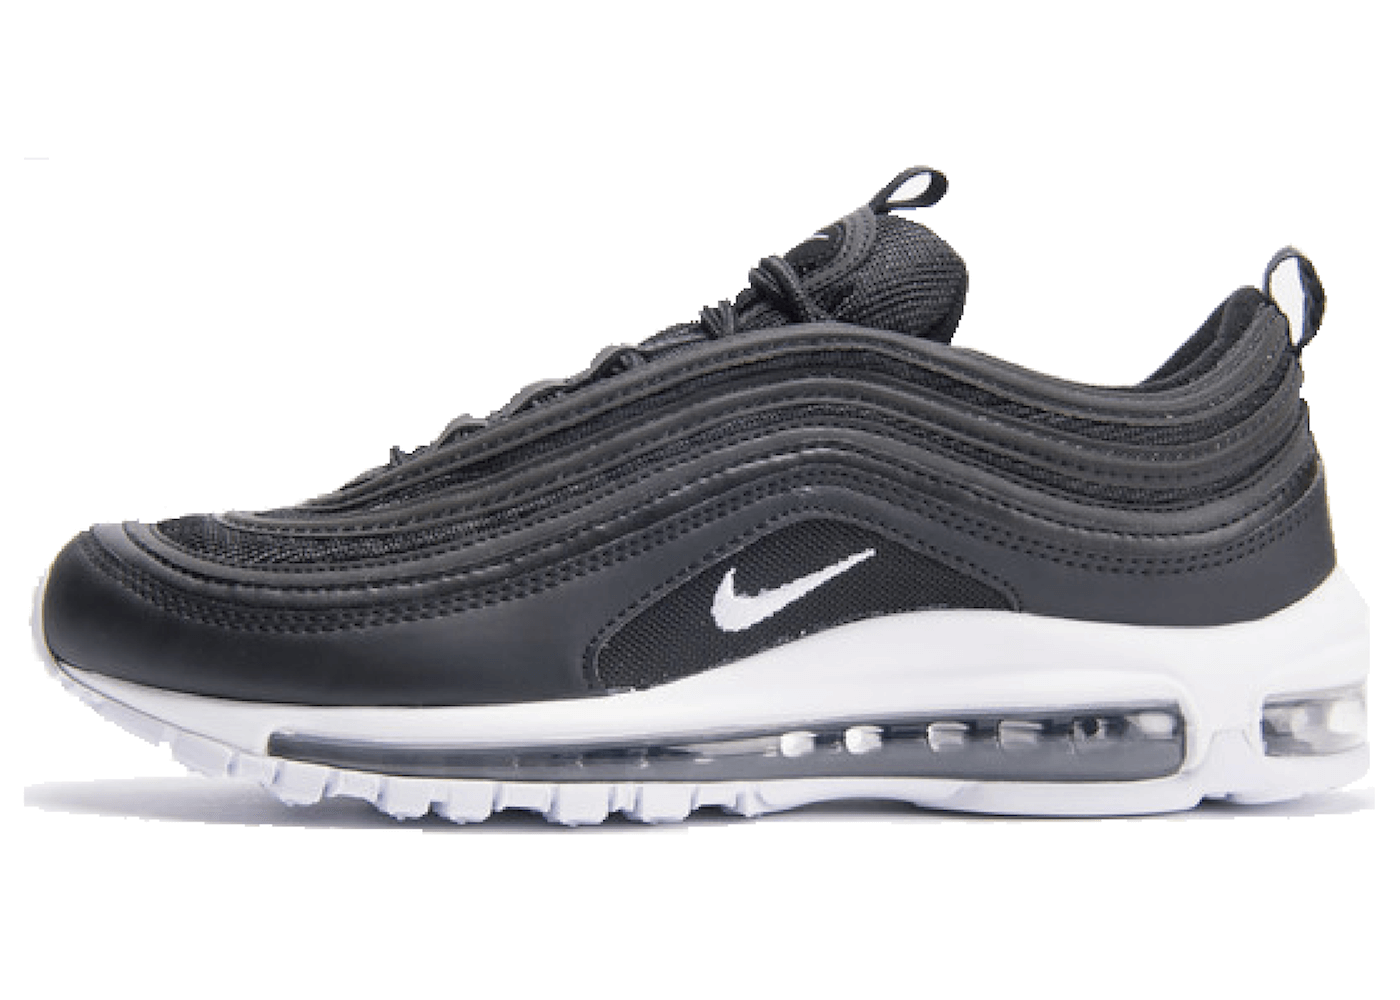 Air Max 97 Black Whiteの写真